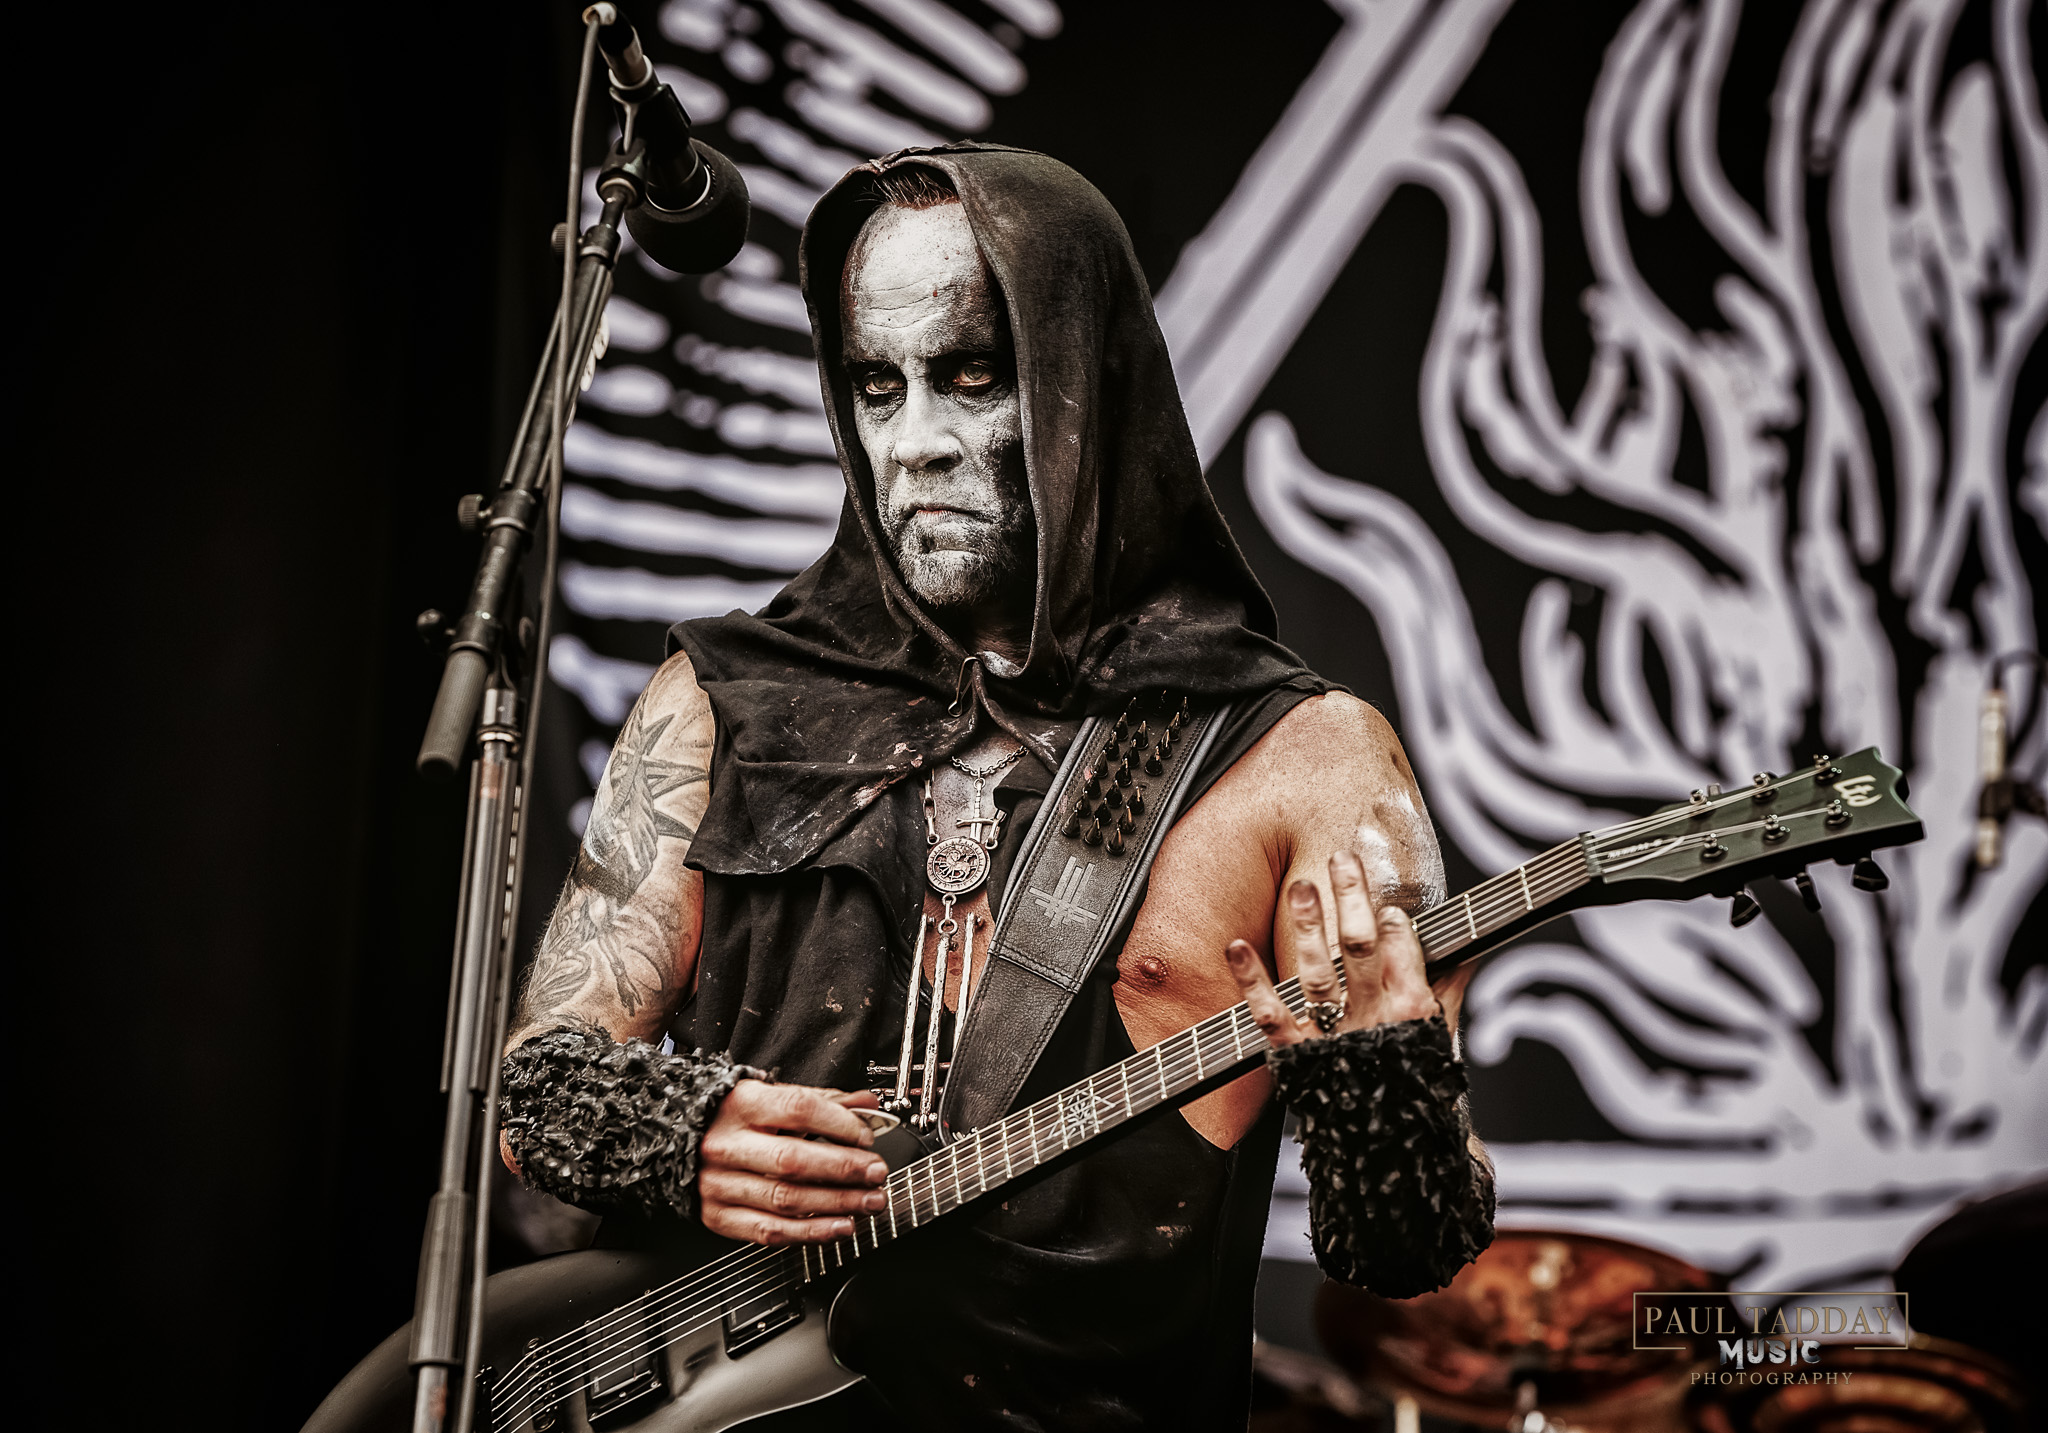 behemoth - download melbourne - march 2019 - web - paul tadday photography - 17.jpg